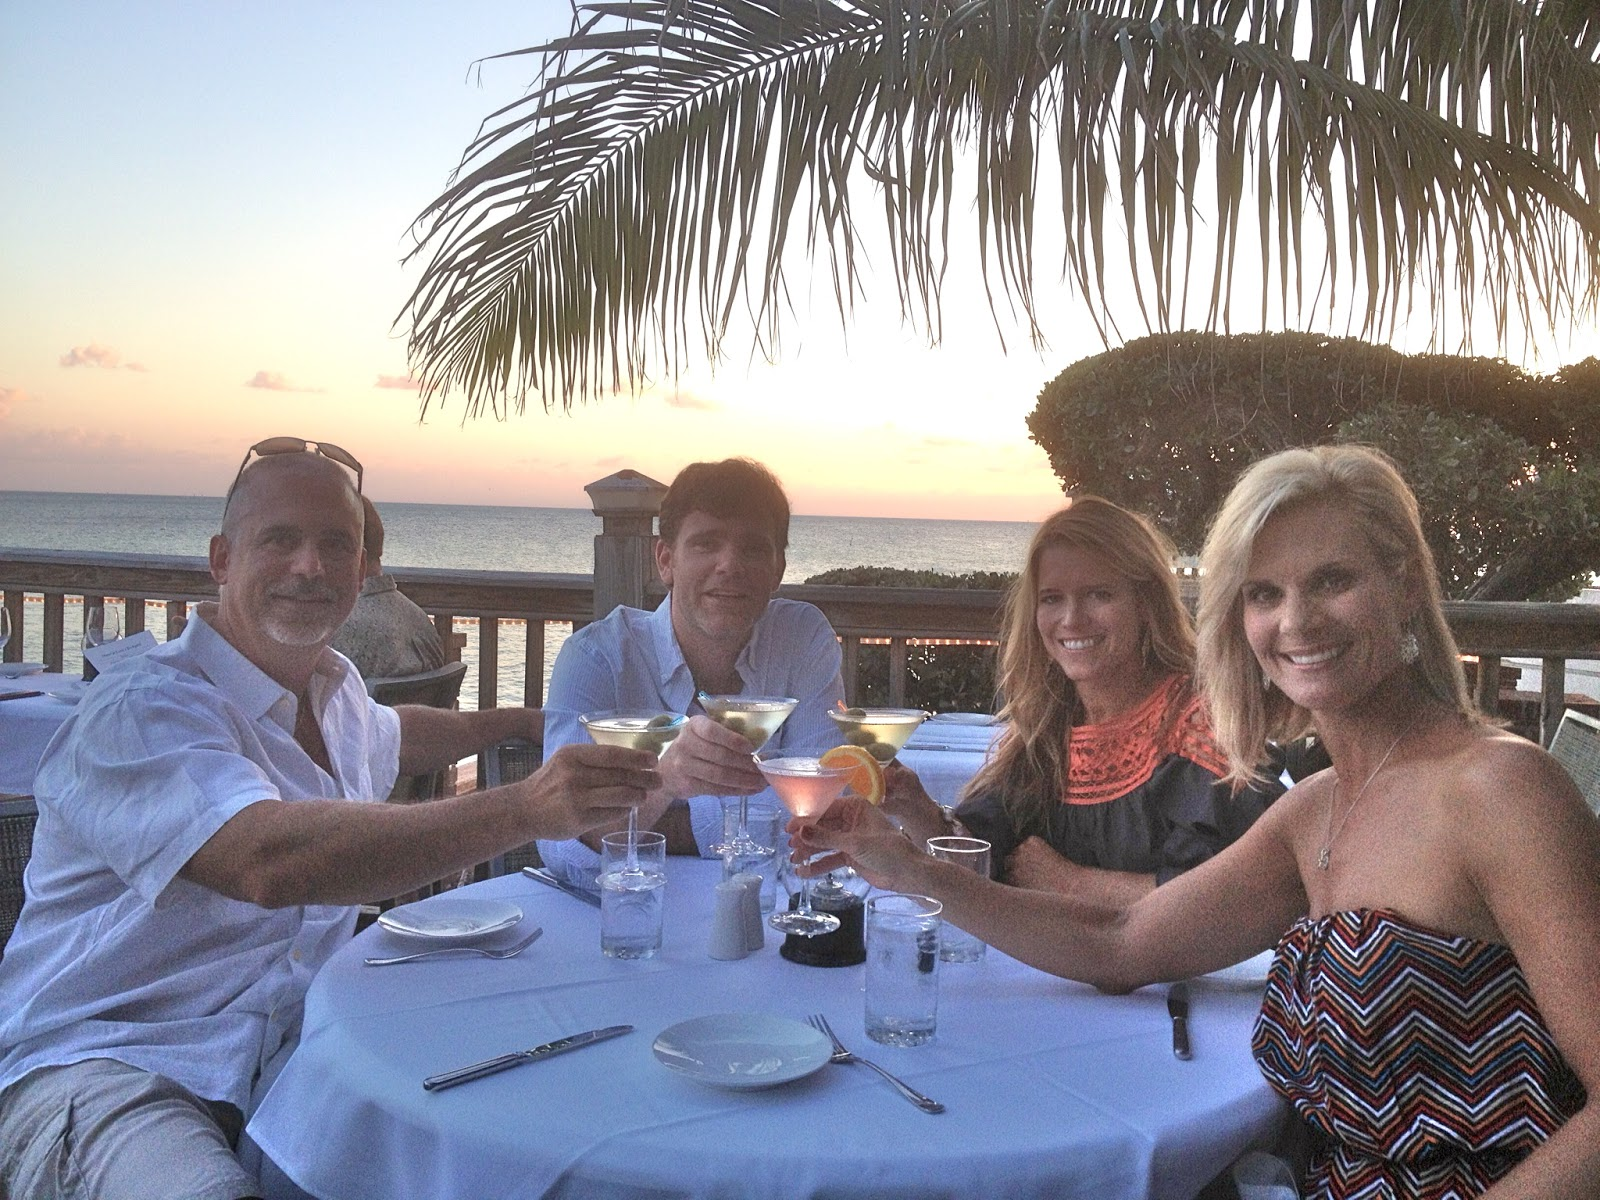 wine taste places to go in key west